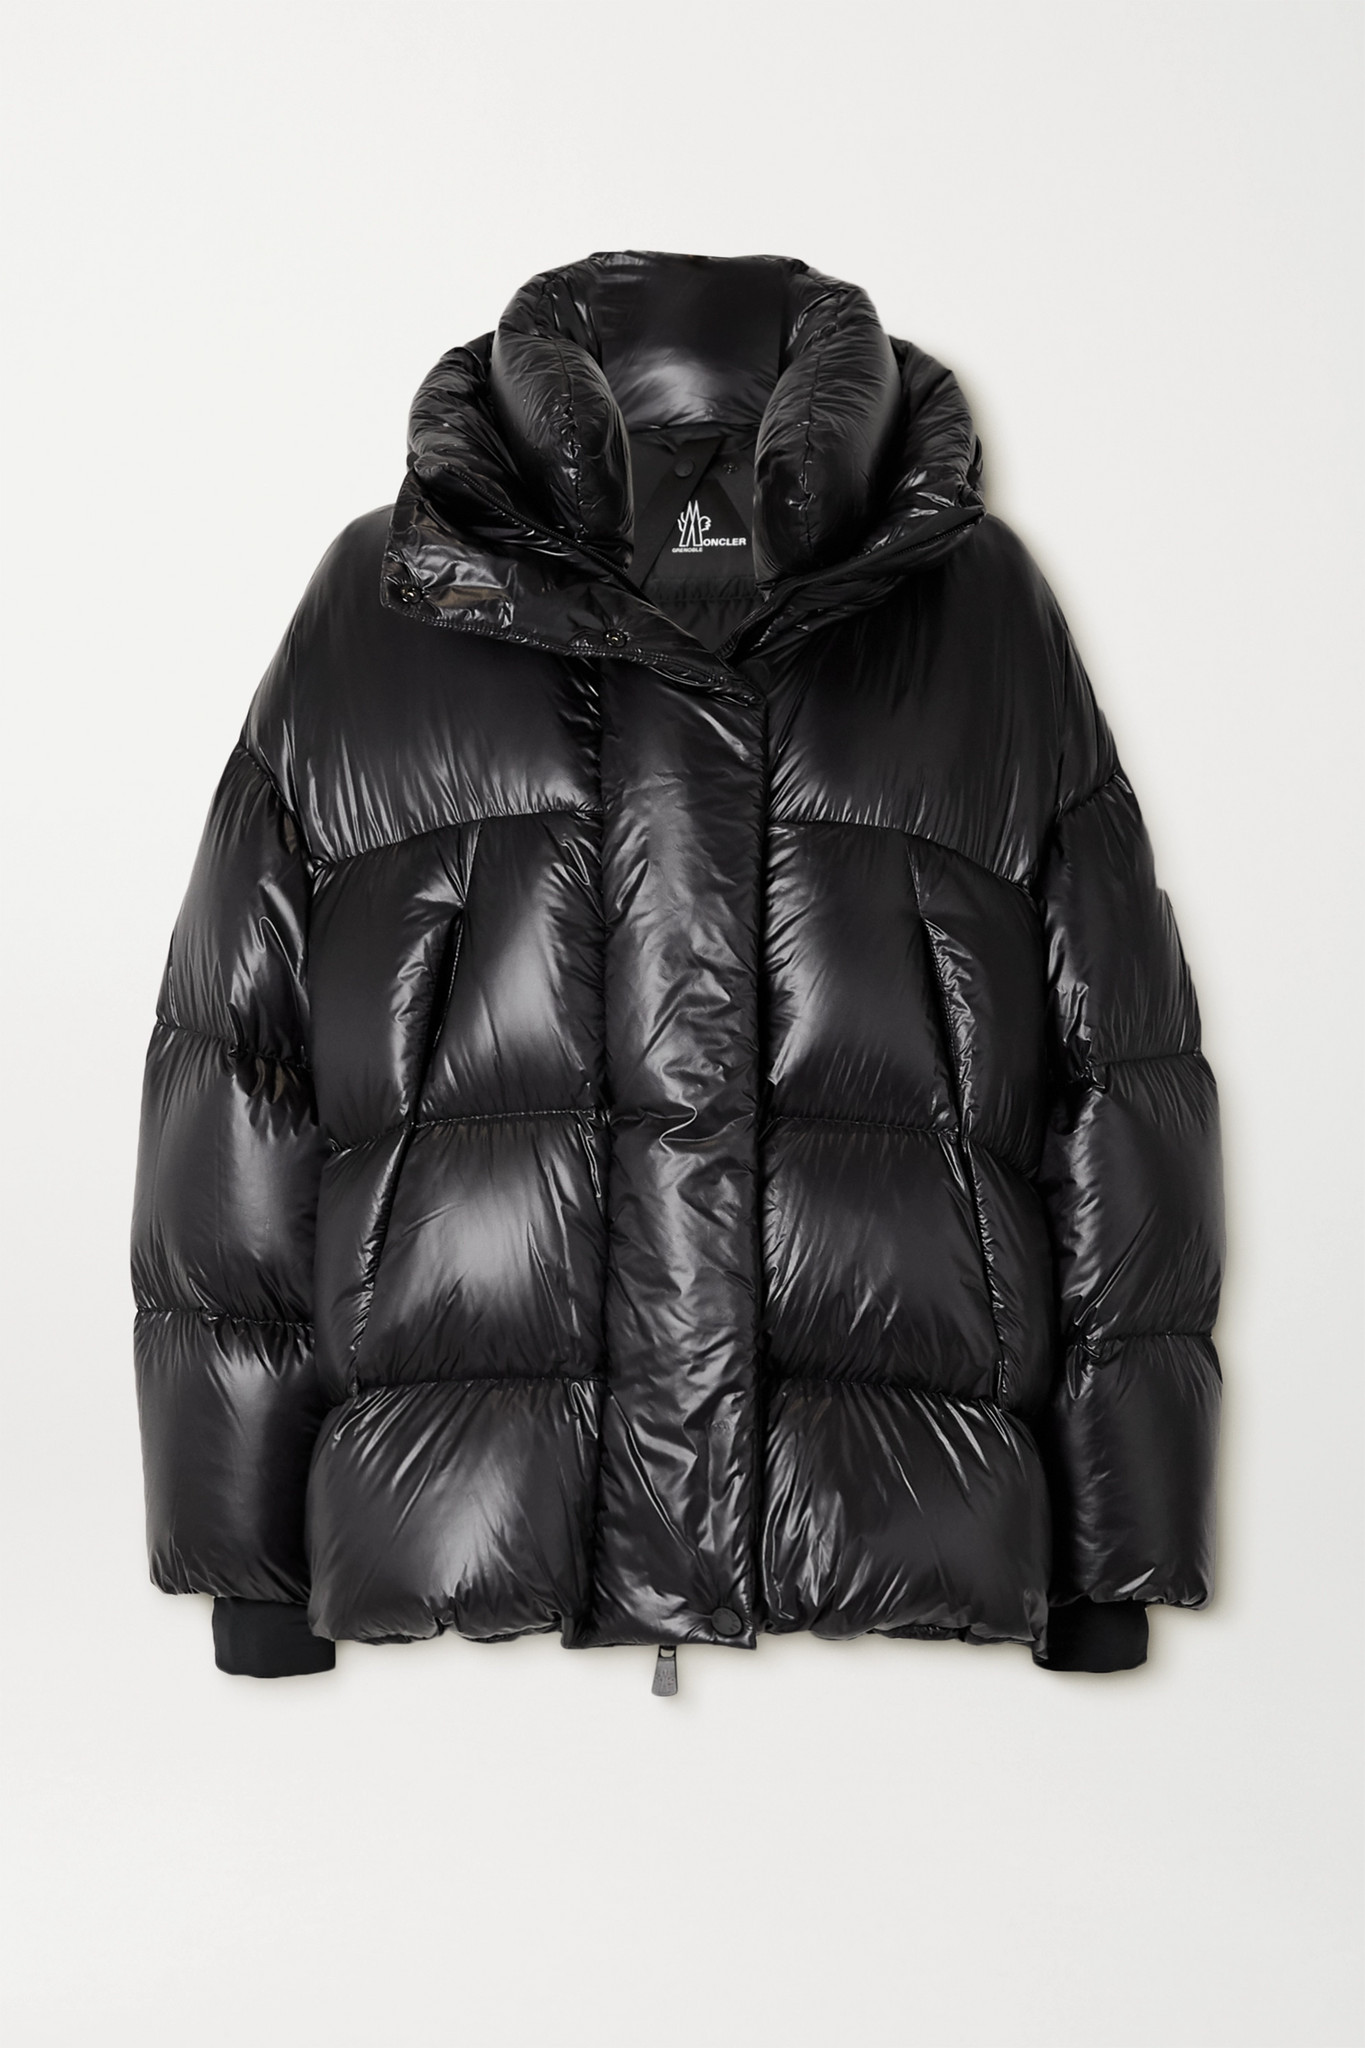 MONCLER GRENOBLE - Arpuilles Quilted Glossed-shell Down Jacket - Black - 1